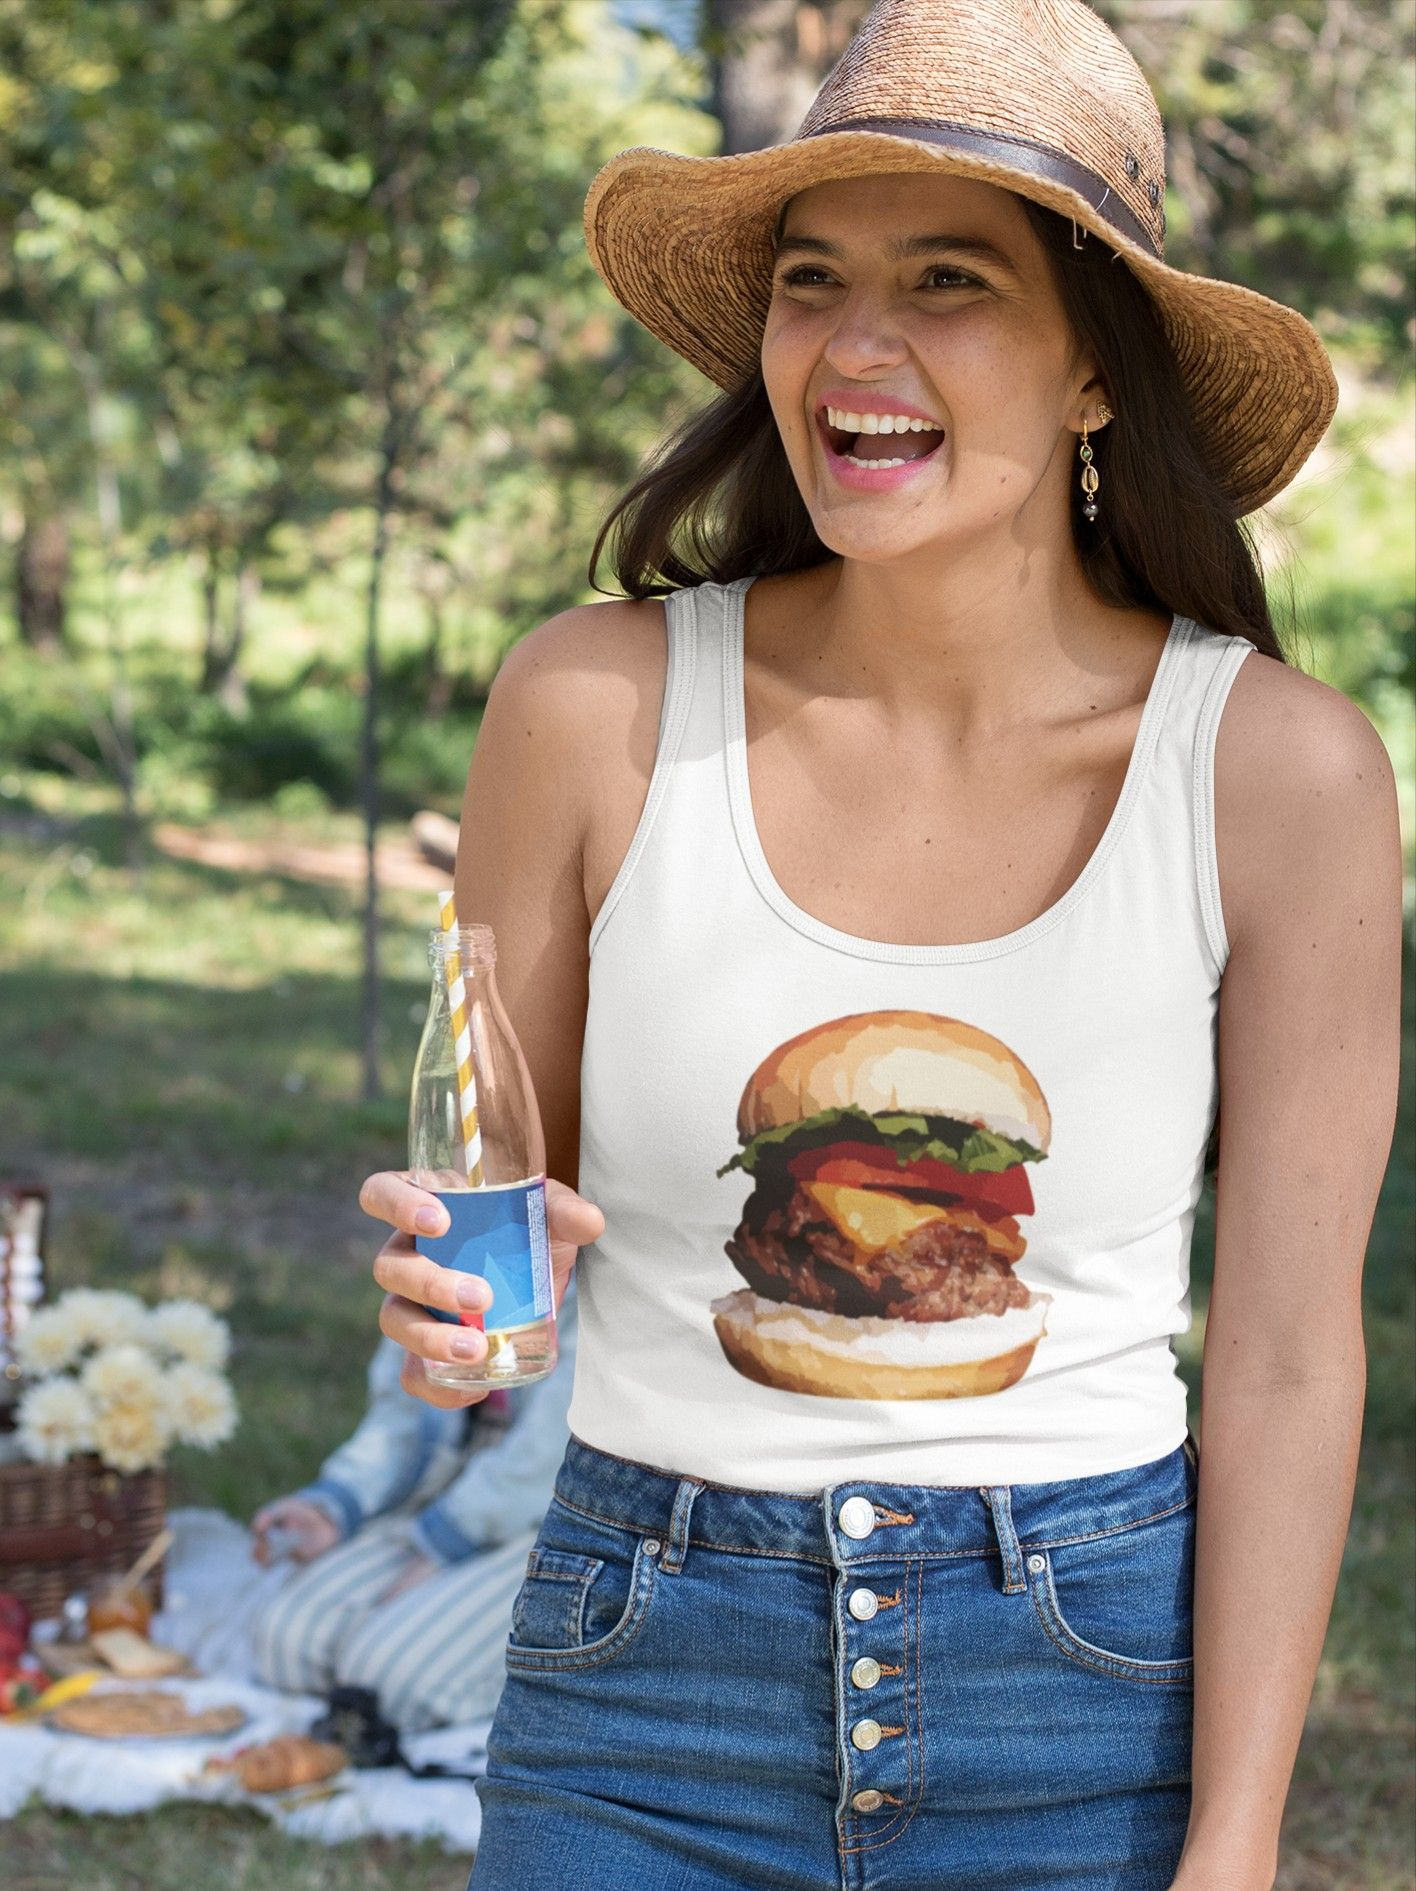 Super Yummy Burger Cute Funny Foodie Shirt Laugh Joke Food Hungry Snack Gift Sarcastic Happy Fun In 2020 Foodie Shirts Delicious Burgers Funny Foodie Shirts